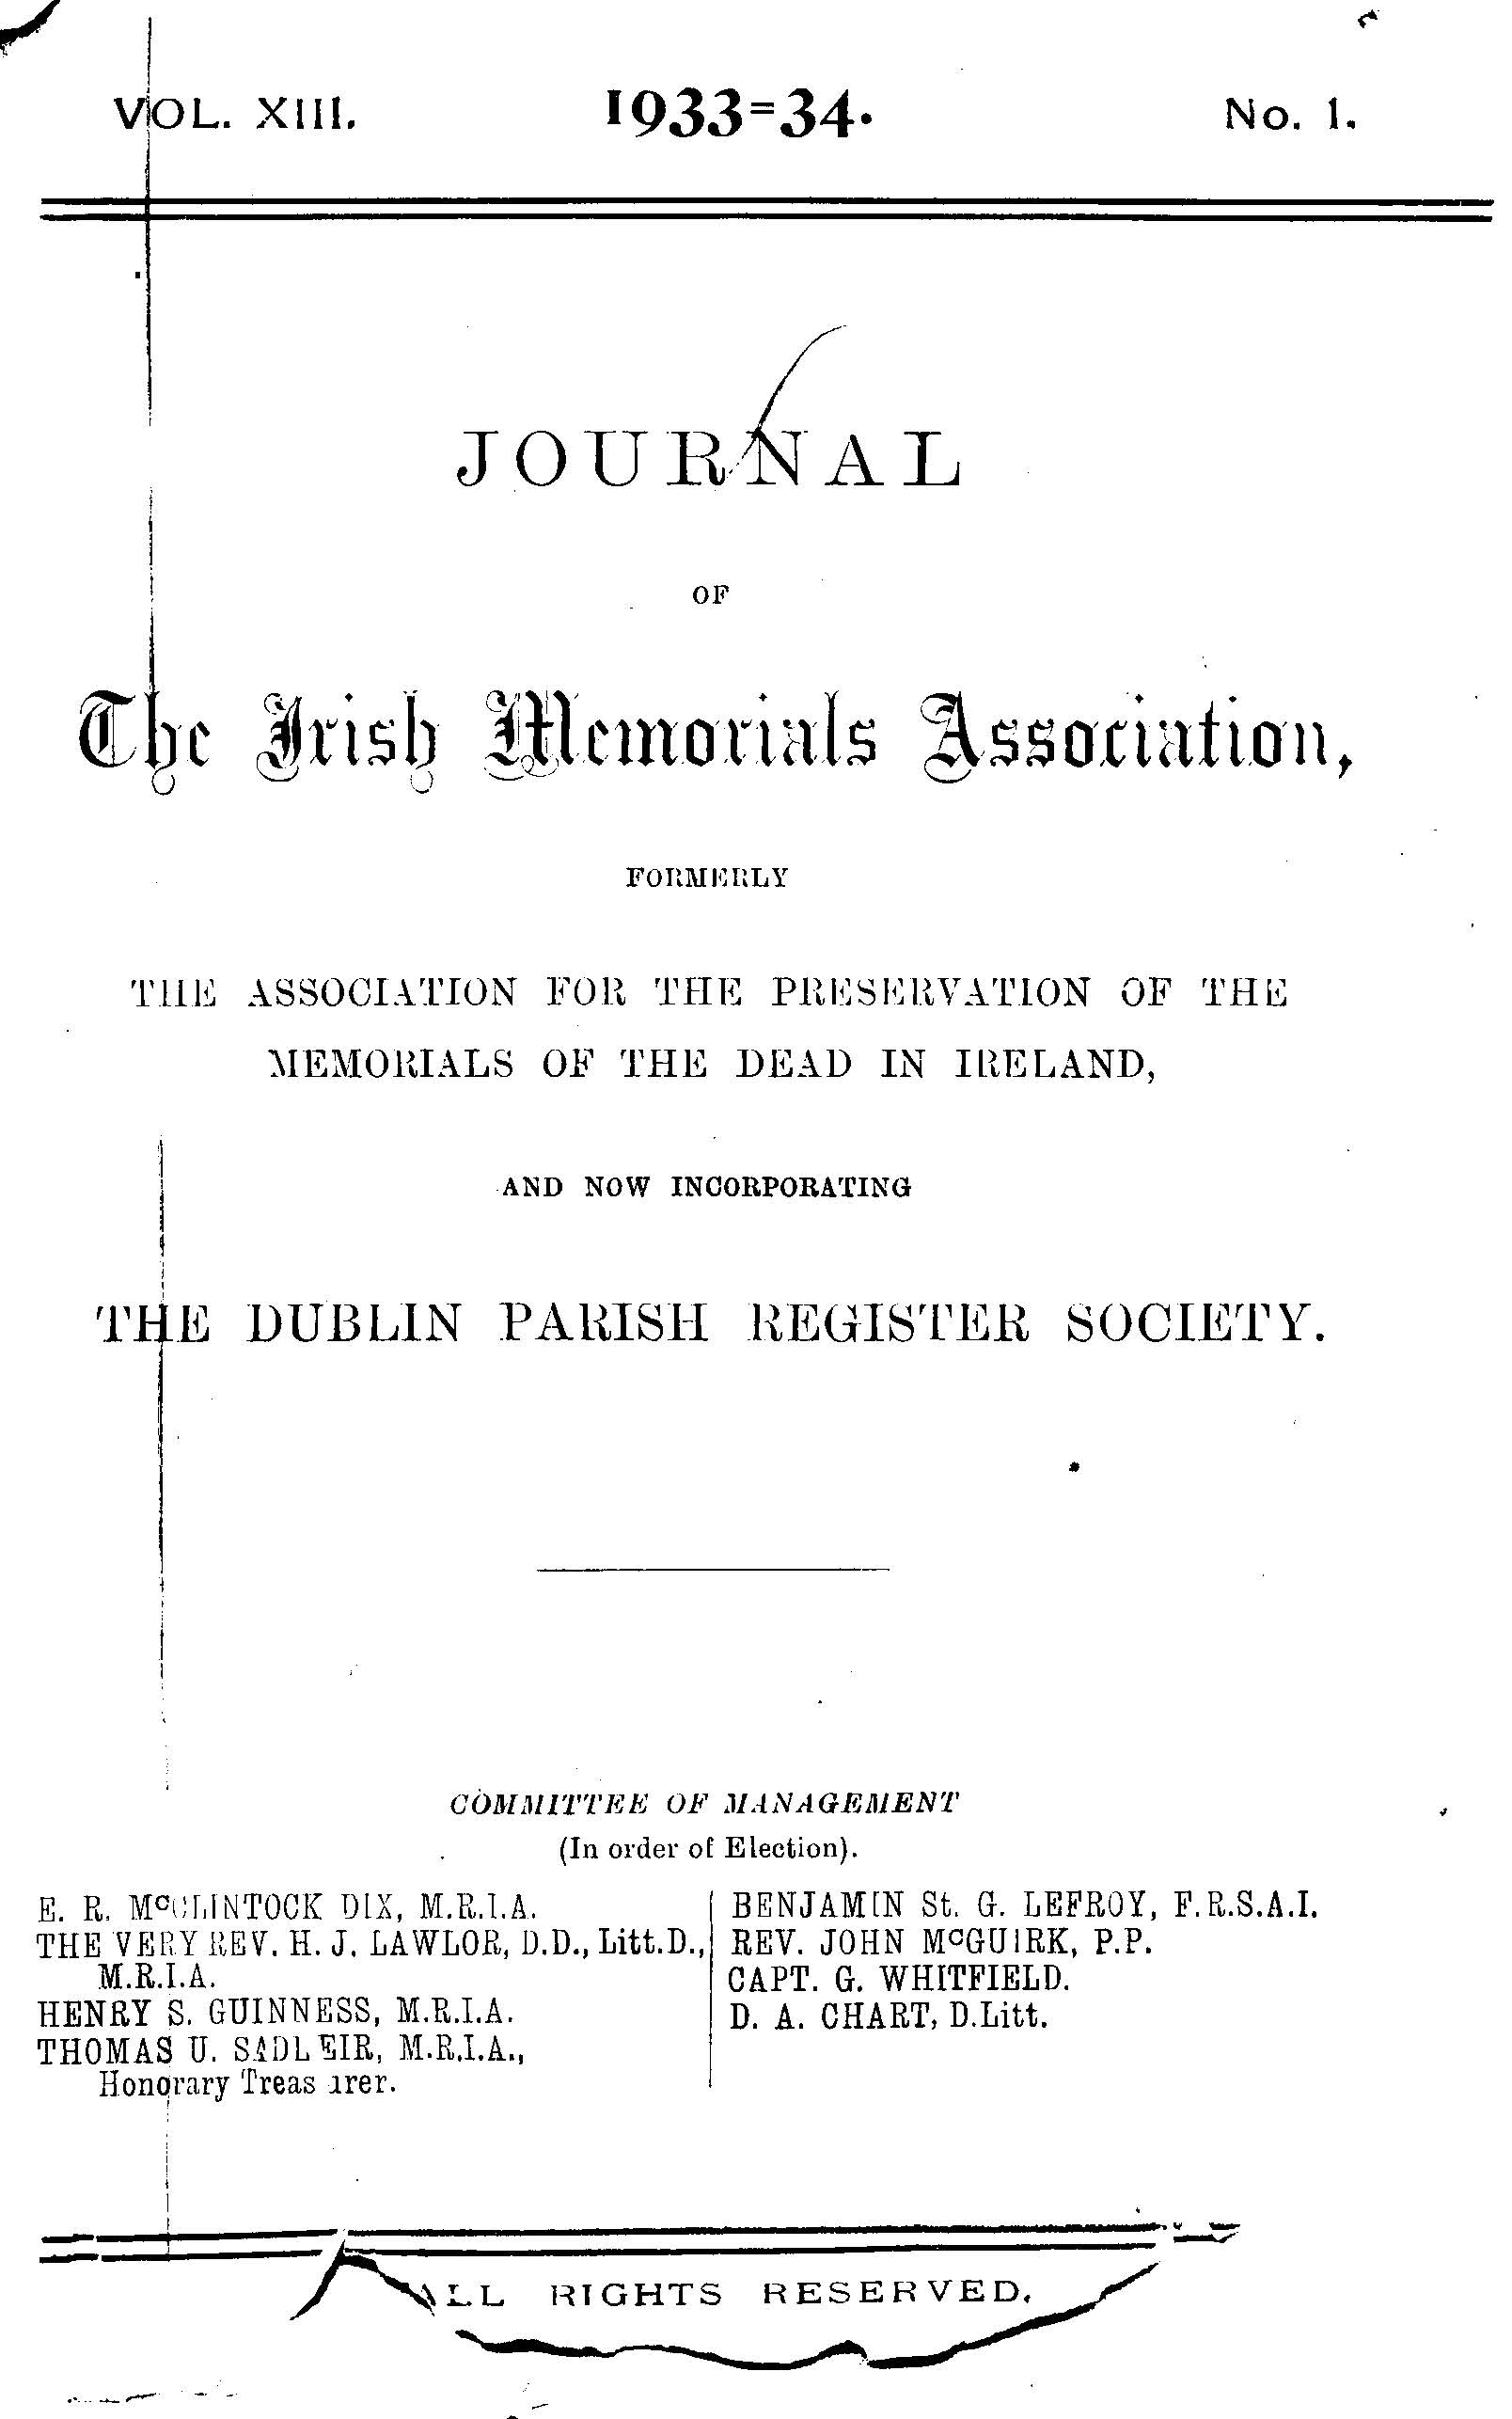 photo of Journal of the Association for the Preservation of the Memorials of the Dead. Volume XIII, for the years 1933-1934.